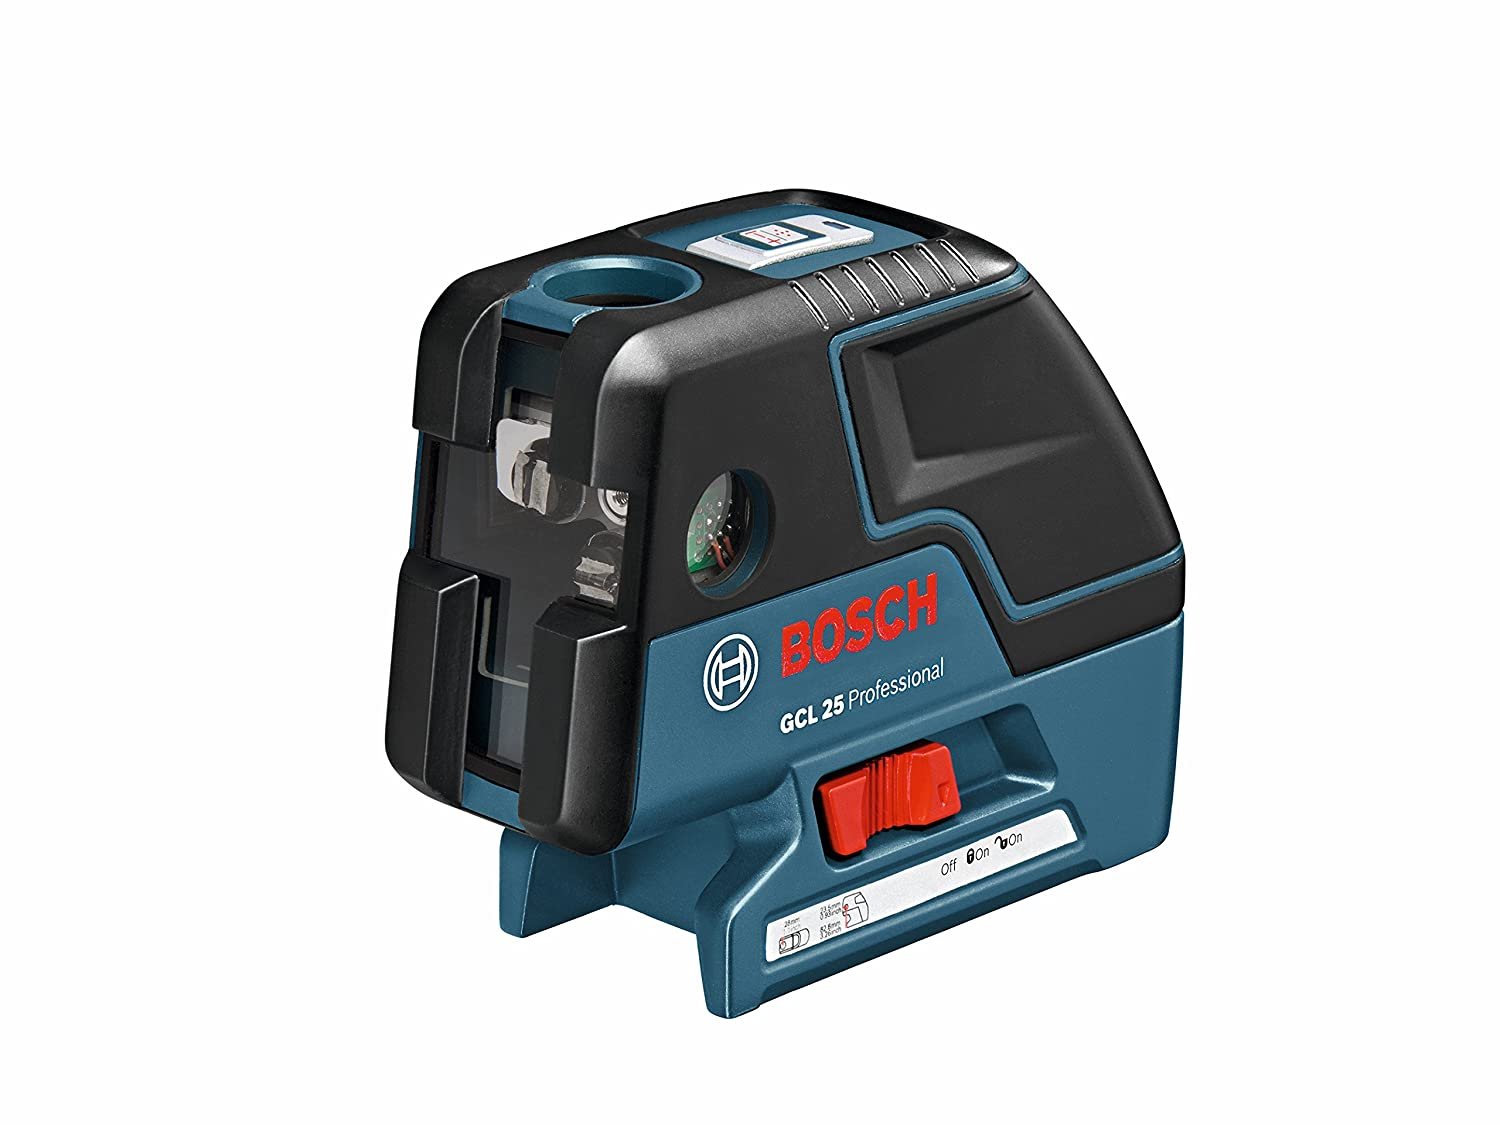 Bosch Gcl 25 Self Leveling 5 Point Alignment Laser With Cross Line And L Boxx St